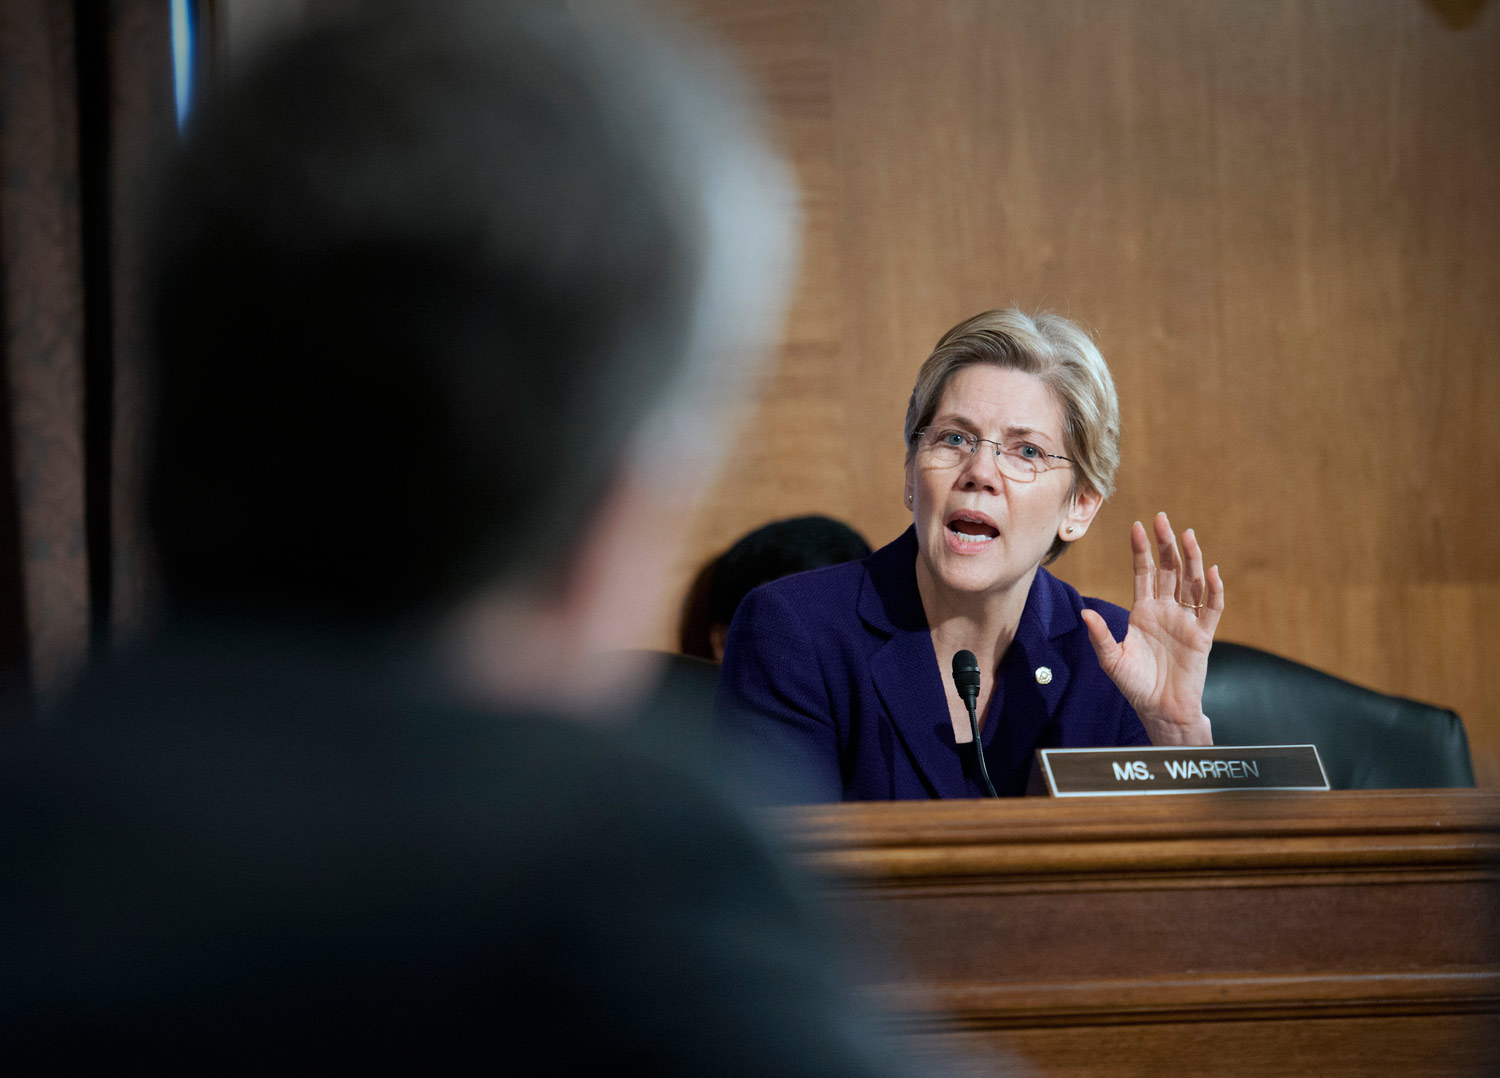 Elizabeth-Warren-Explains-Why-She-Ran-for-Office